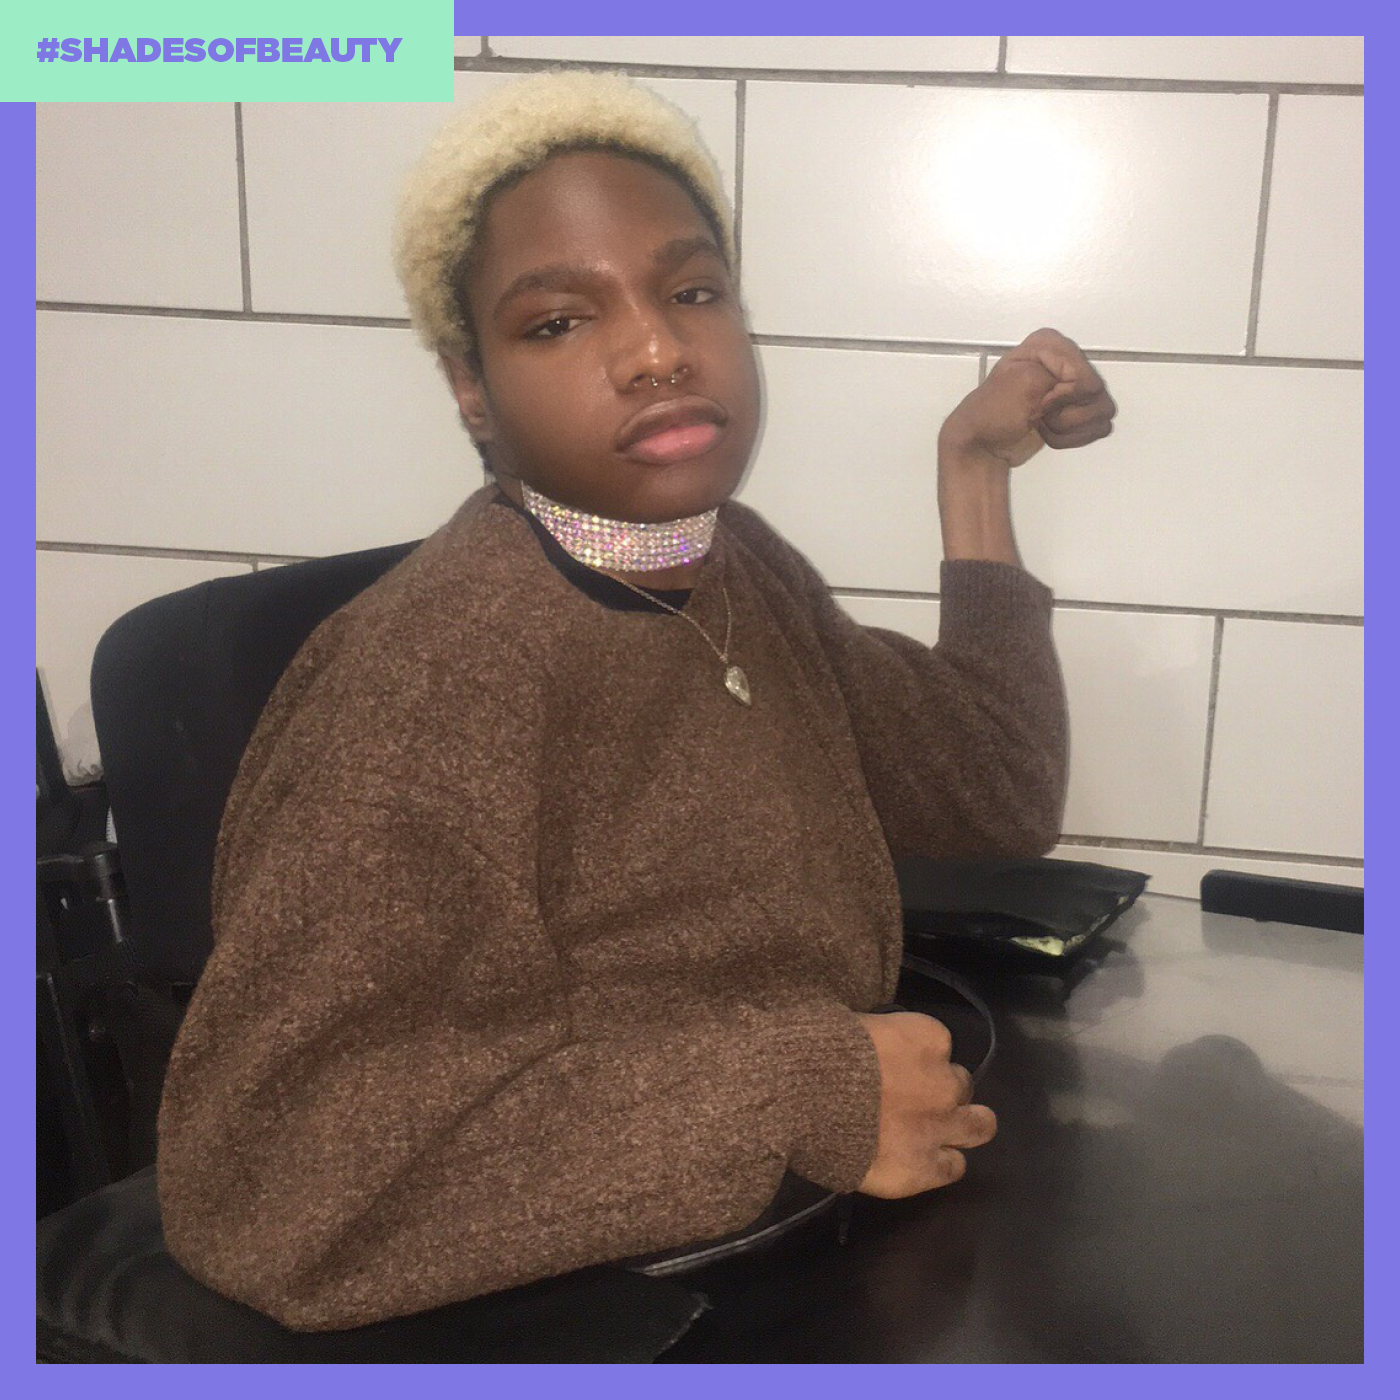 Beauty comes in all shapes, colors, sizes, and abilities. Just ask rising model Aaron Phillip. (Photo: Courtesy of Aaron Phillip, Art by Quinn Lemmers for Yahoo Lifestyle)